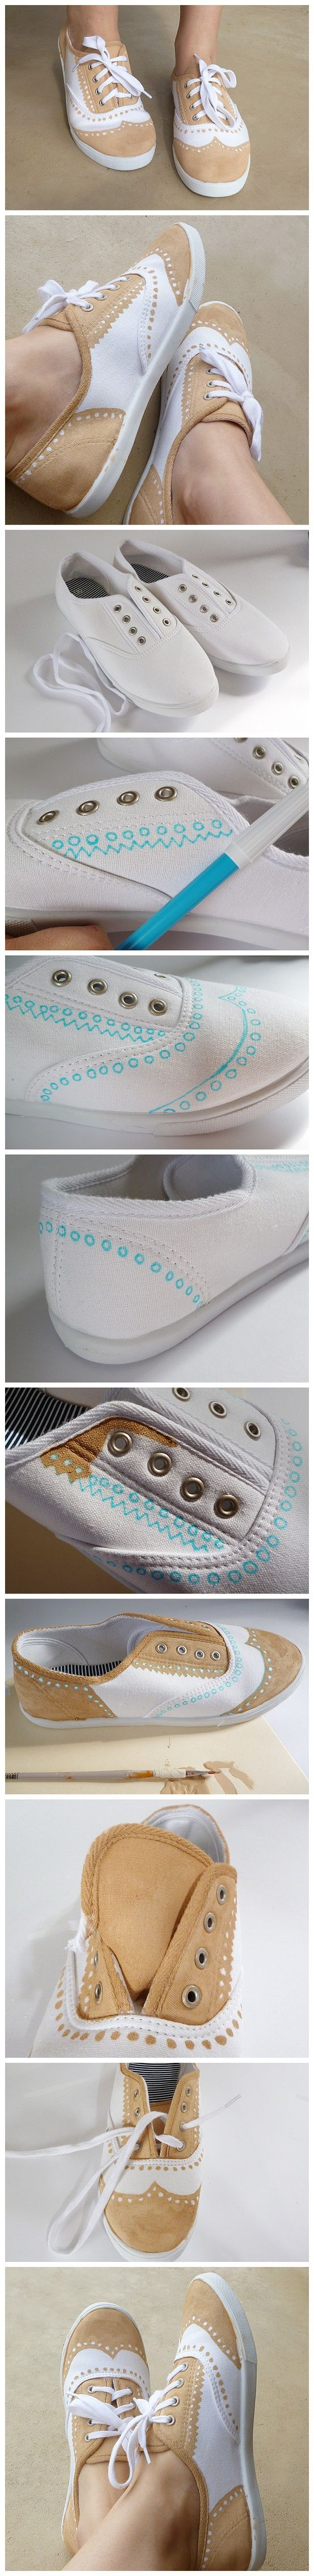 I really want to try this but with my own designs :) really smart idea, can customize the shoes in any way you want